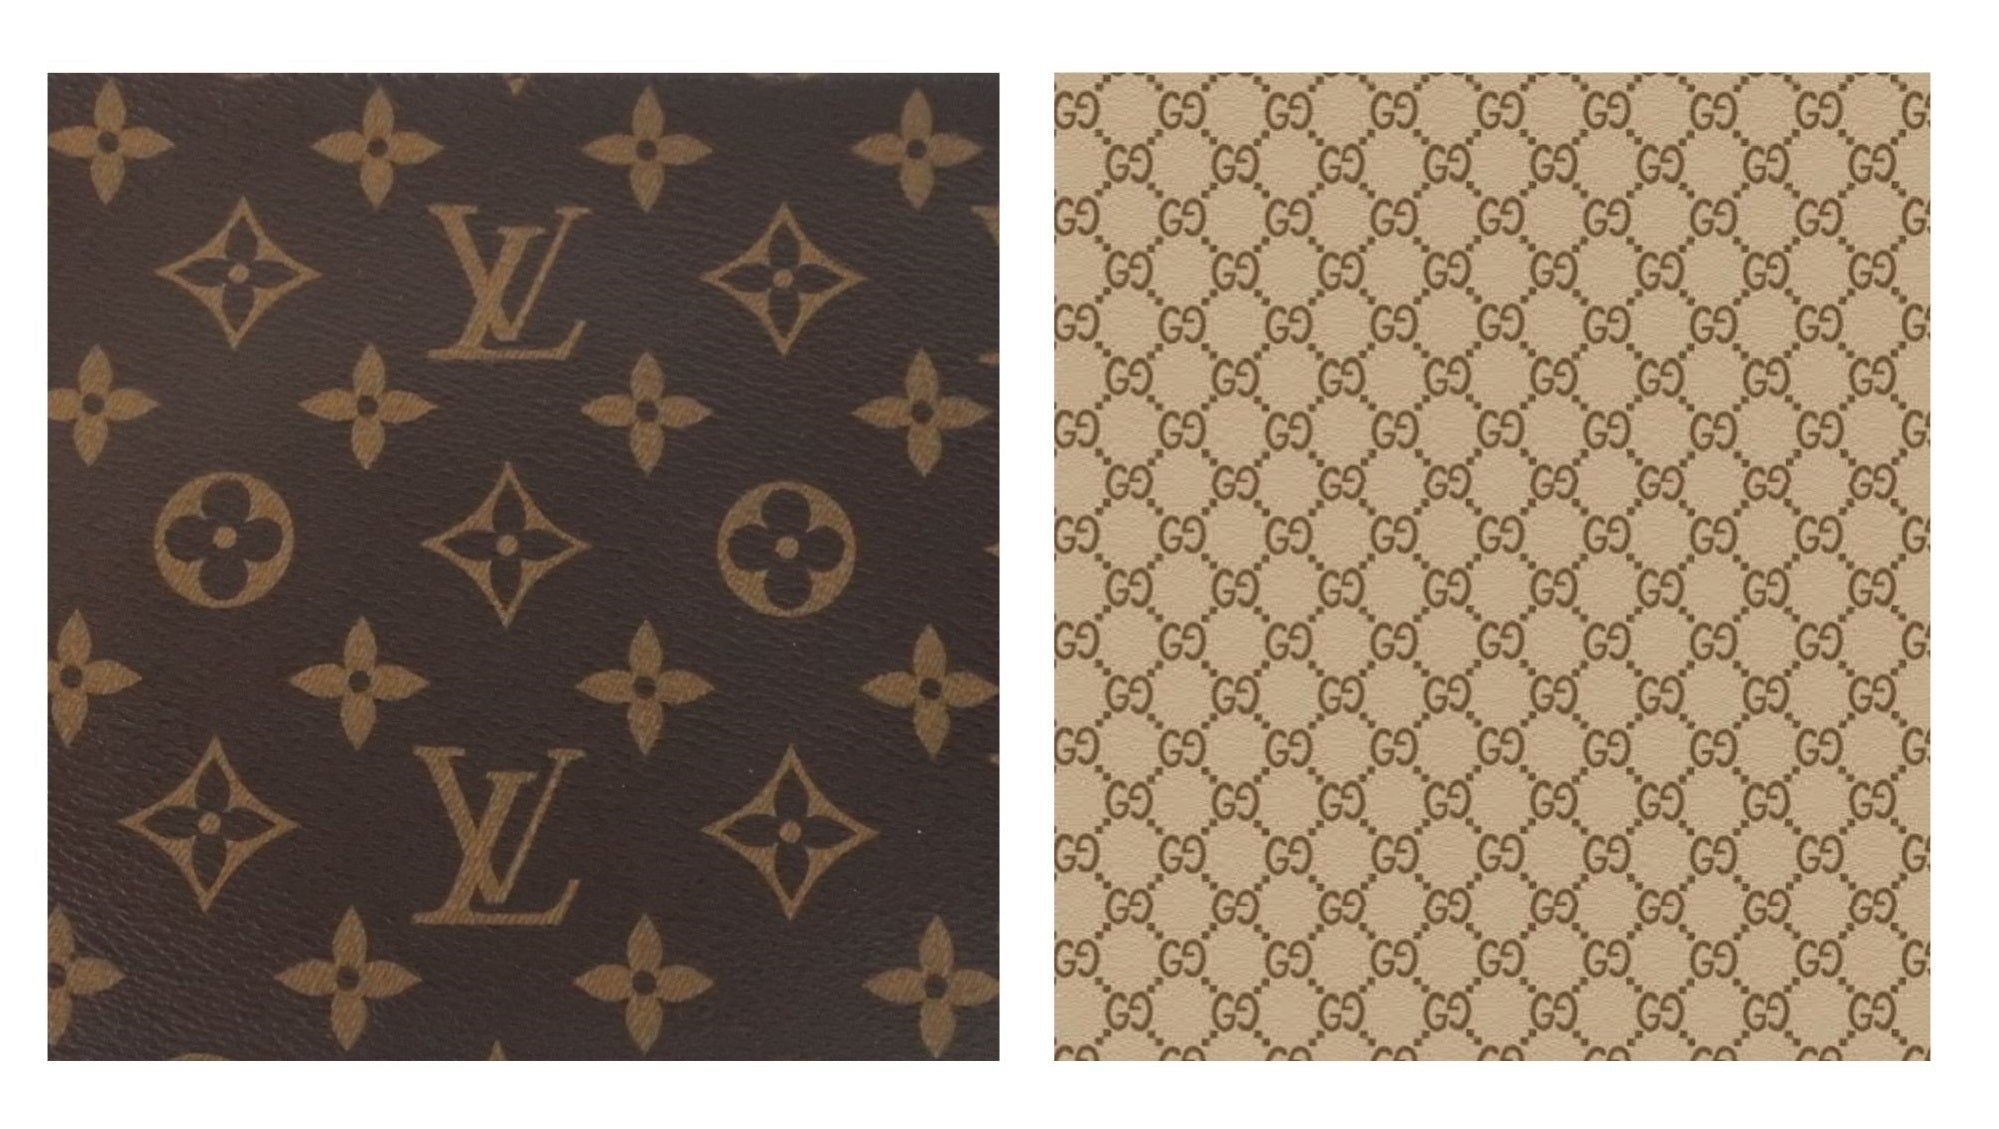 Which Brand Is Better: Louis Vuitton vs Gucci